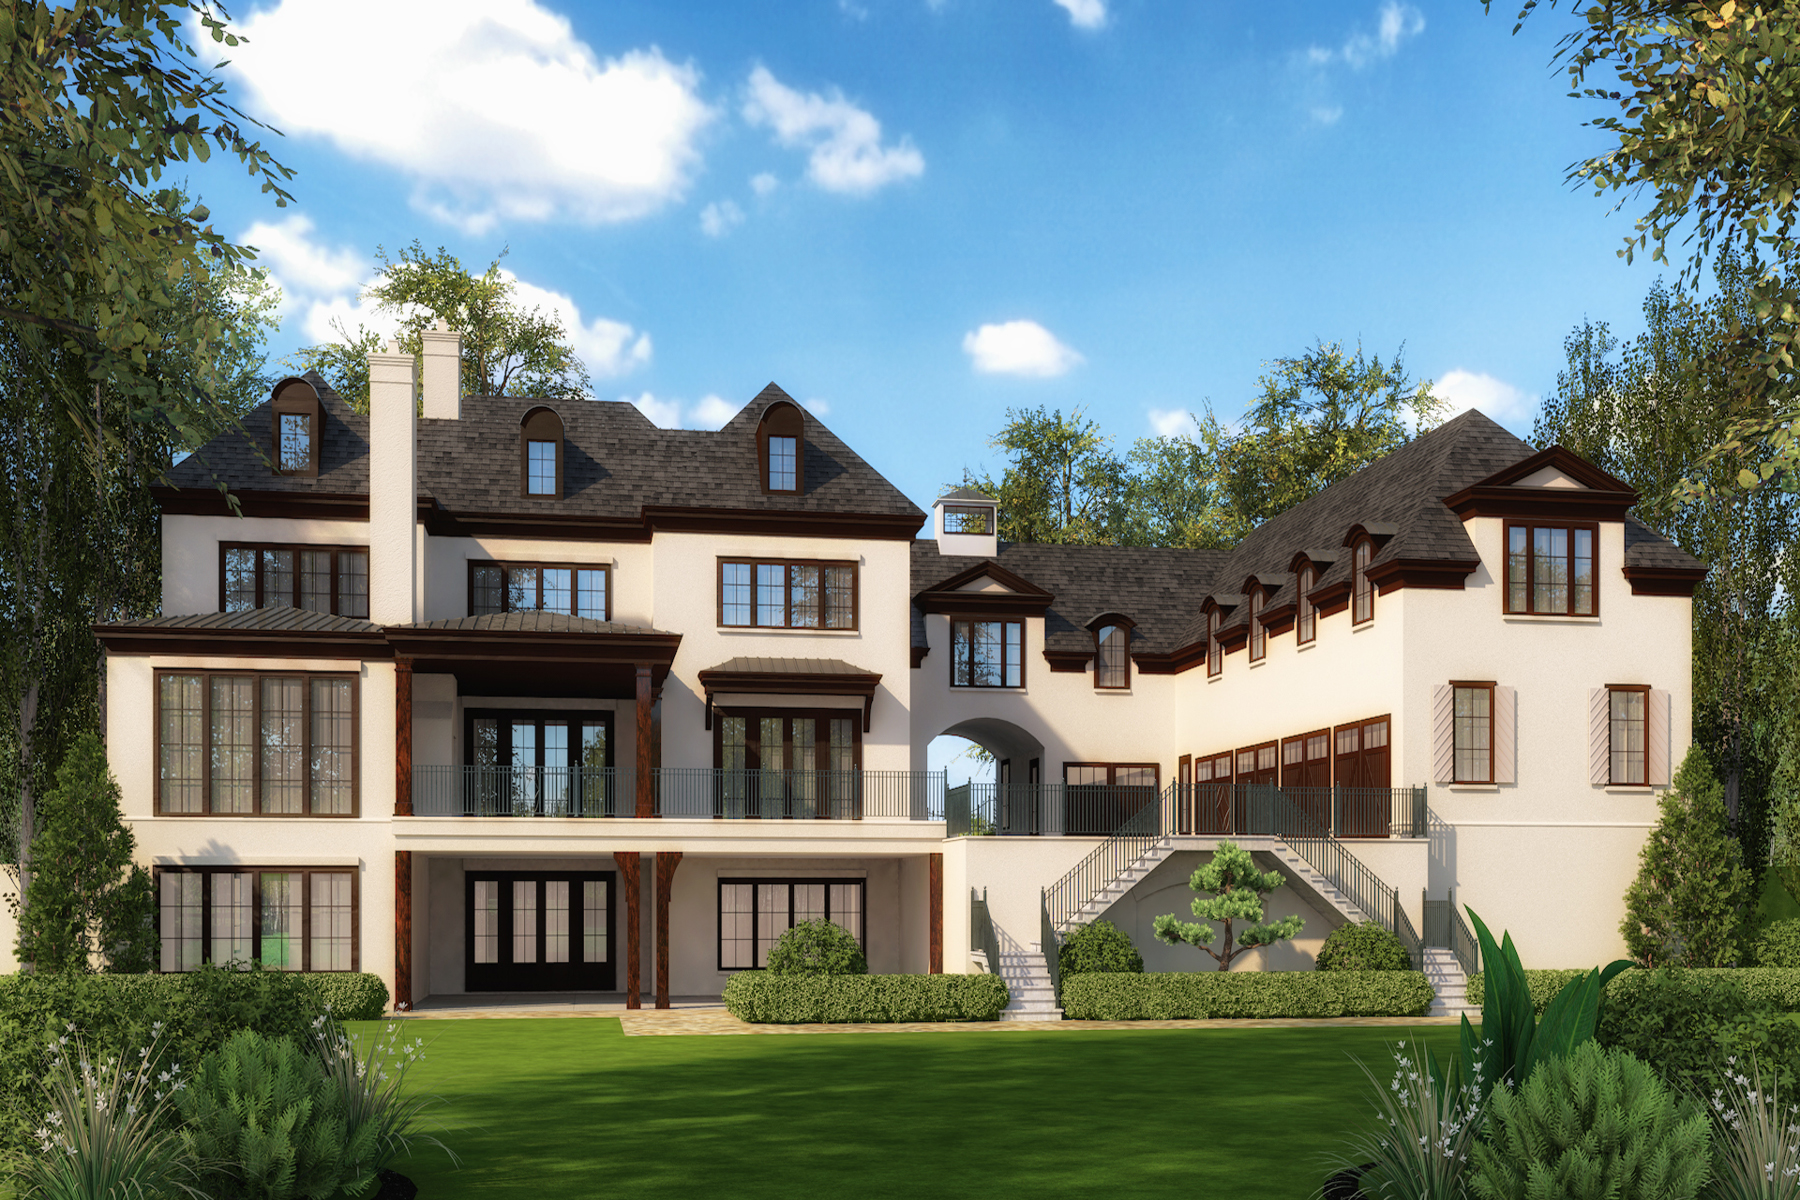 Additional photo for property listing at Exquisite New Construction 4126 Conway Valley Road NW Atlanta, Georgia 30327 Estados Unidos